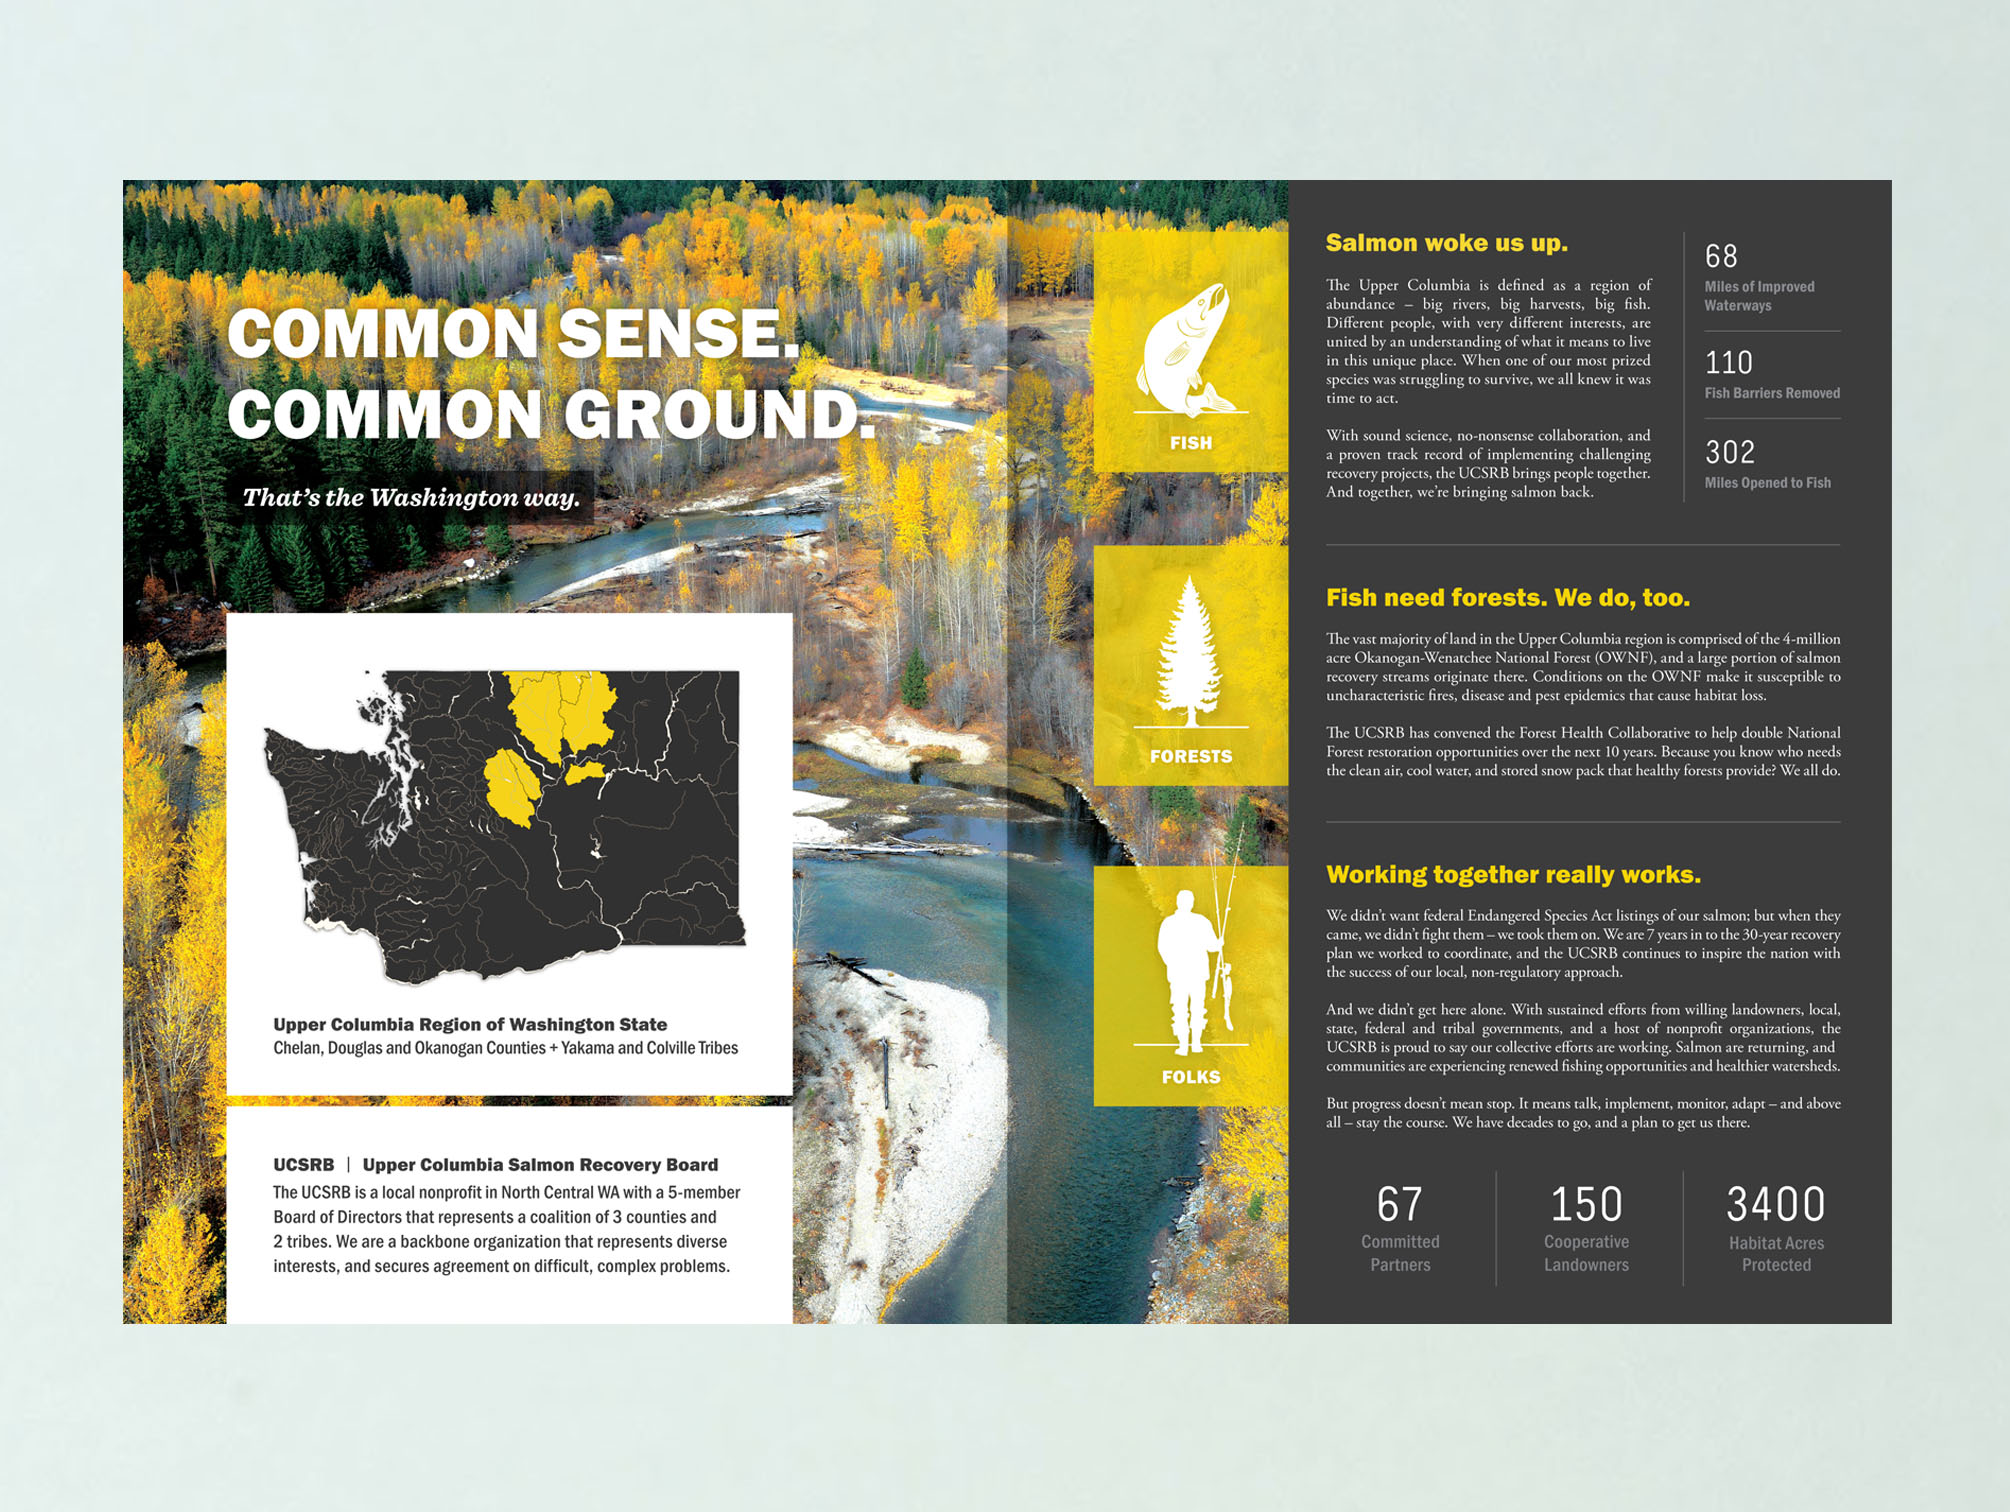 Design and copywriting for Upper Columbia Salmon Recovery Boardbrochure. Interior spread shown.   Primary content in dark gray band follows:   —    Salmon woke us up.   The Upper Columbia is defined as a region of abundance – big rivers, big harvests, big fish. Different people, with very different interests, are united by an understanding of what it means to live in this unique place. When one of our most prized species was struggling to survive, we all knew it was time to act.  With sound science, no-nonsense collaboration, and a proven track record of implementing challenging recovery projects, the UCSRB brings people together. And together, we're bringing salmon back.   —    Fish need forests. People do, too.   The vast majority of land in the Upper Columbia region is comprised of the 4-million acre Okanogan-Wenatchee National Forest (OWNF), and a large portion of salmon recovery streams originate there. Conditions on the OWNF make it susceptible to uncharacteristic fires, disease and pest epidemics that cause habitat loss.  The UCSRB has convened the Forest Health Collaborative to help double National Forest restoration opportunities over the next 10 years. Because you know who needs the clean air, cool water, and stored snow pack that healthy forests provide? We all do.   —    Working together really works.   We didn't want federal Endangered Species Act listings of our salmon; but when they came, we didn't fight them – we took them on. We are 7 years in to the 30-year recovery plan we worked to coordinate, and the UCSRB continues to inspire the nation with the success of our local, non-regulatory approach.  And we didn't get here alone. With sustained efforts from willing landowners, local, state, federal and tribal governments, and a host of nonprofit organizations, the UCSRB is proud to say our collective efforts are working. Salmon are returning, andcommunities are experiencing renewed fishing opportunities and healthier watersheds.  But progress doesn't m